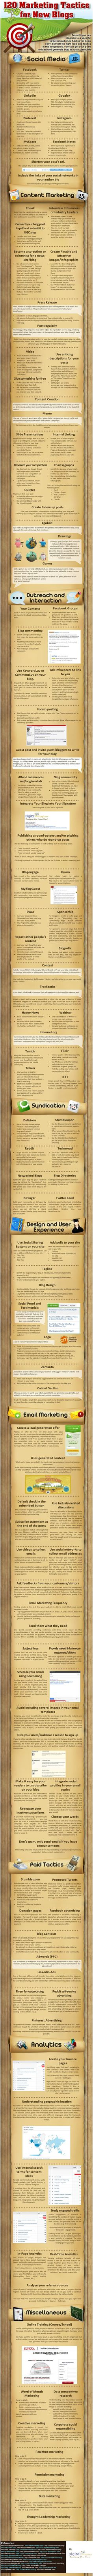 Marketing Tactics for Blogs Infographic